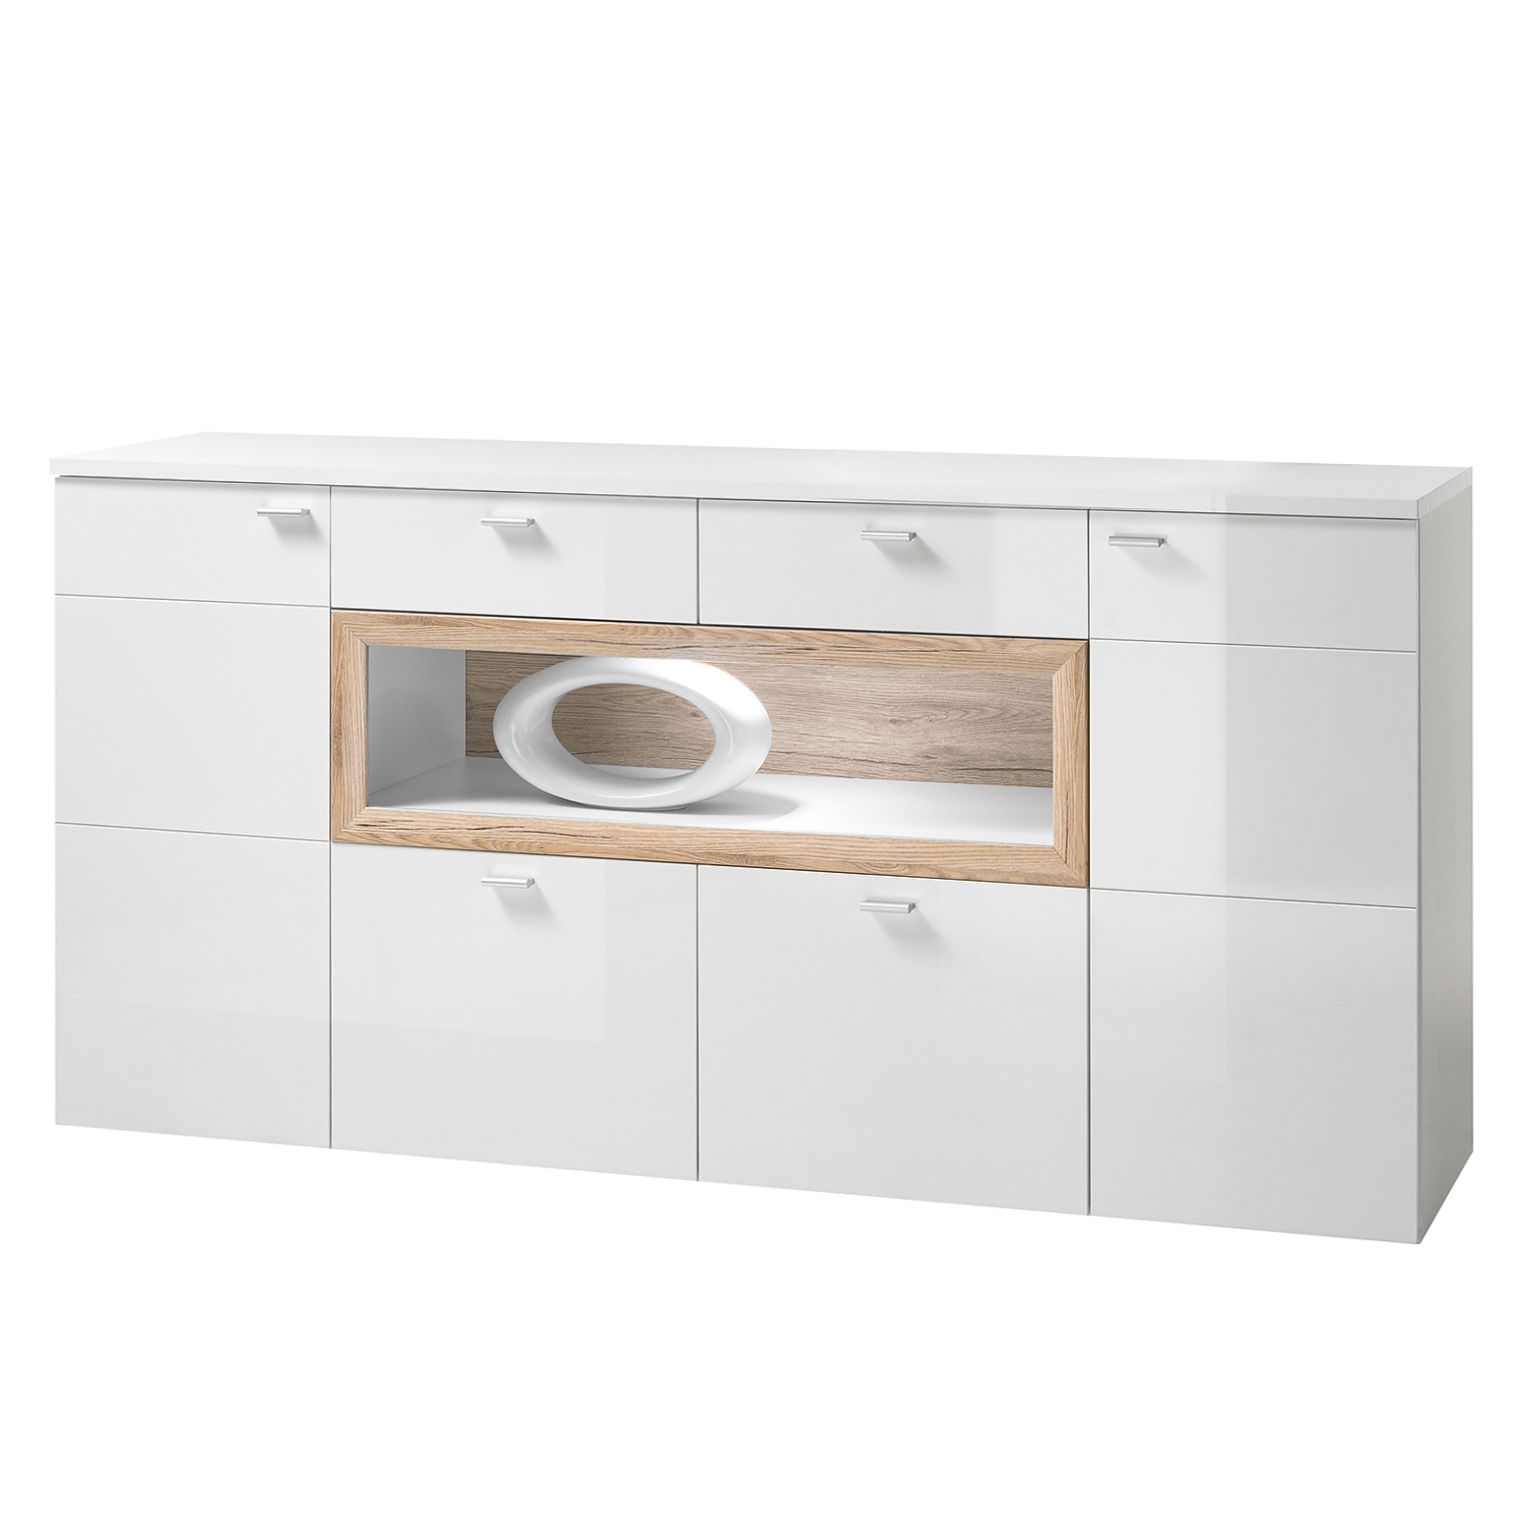 Sideboard Cornhill (inkl. Beleuchtung)